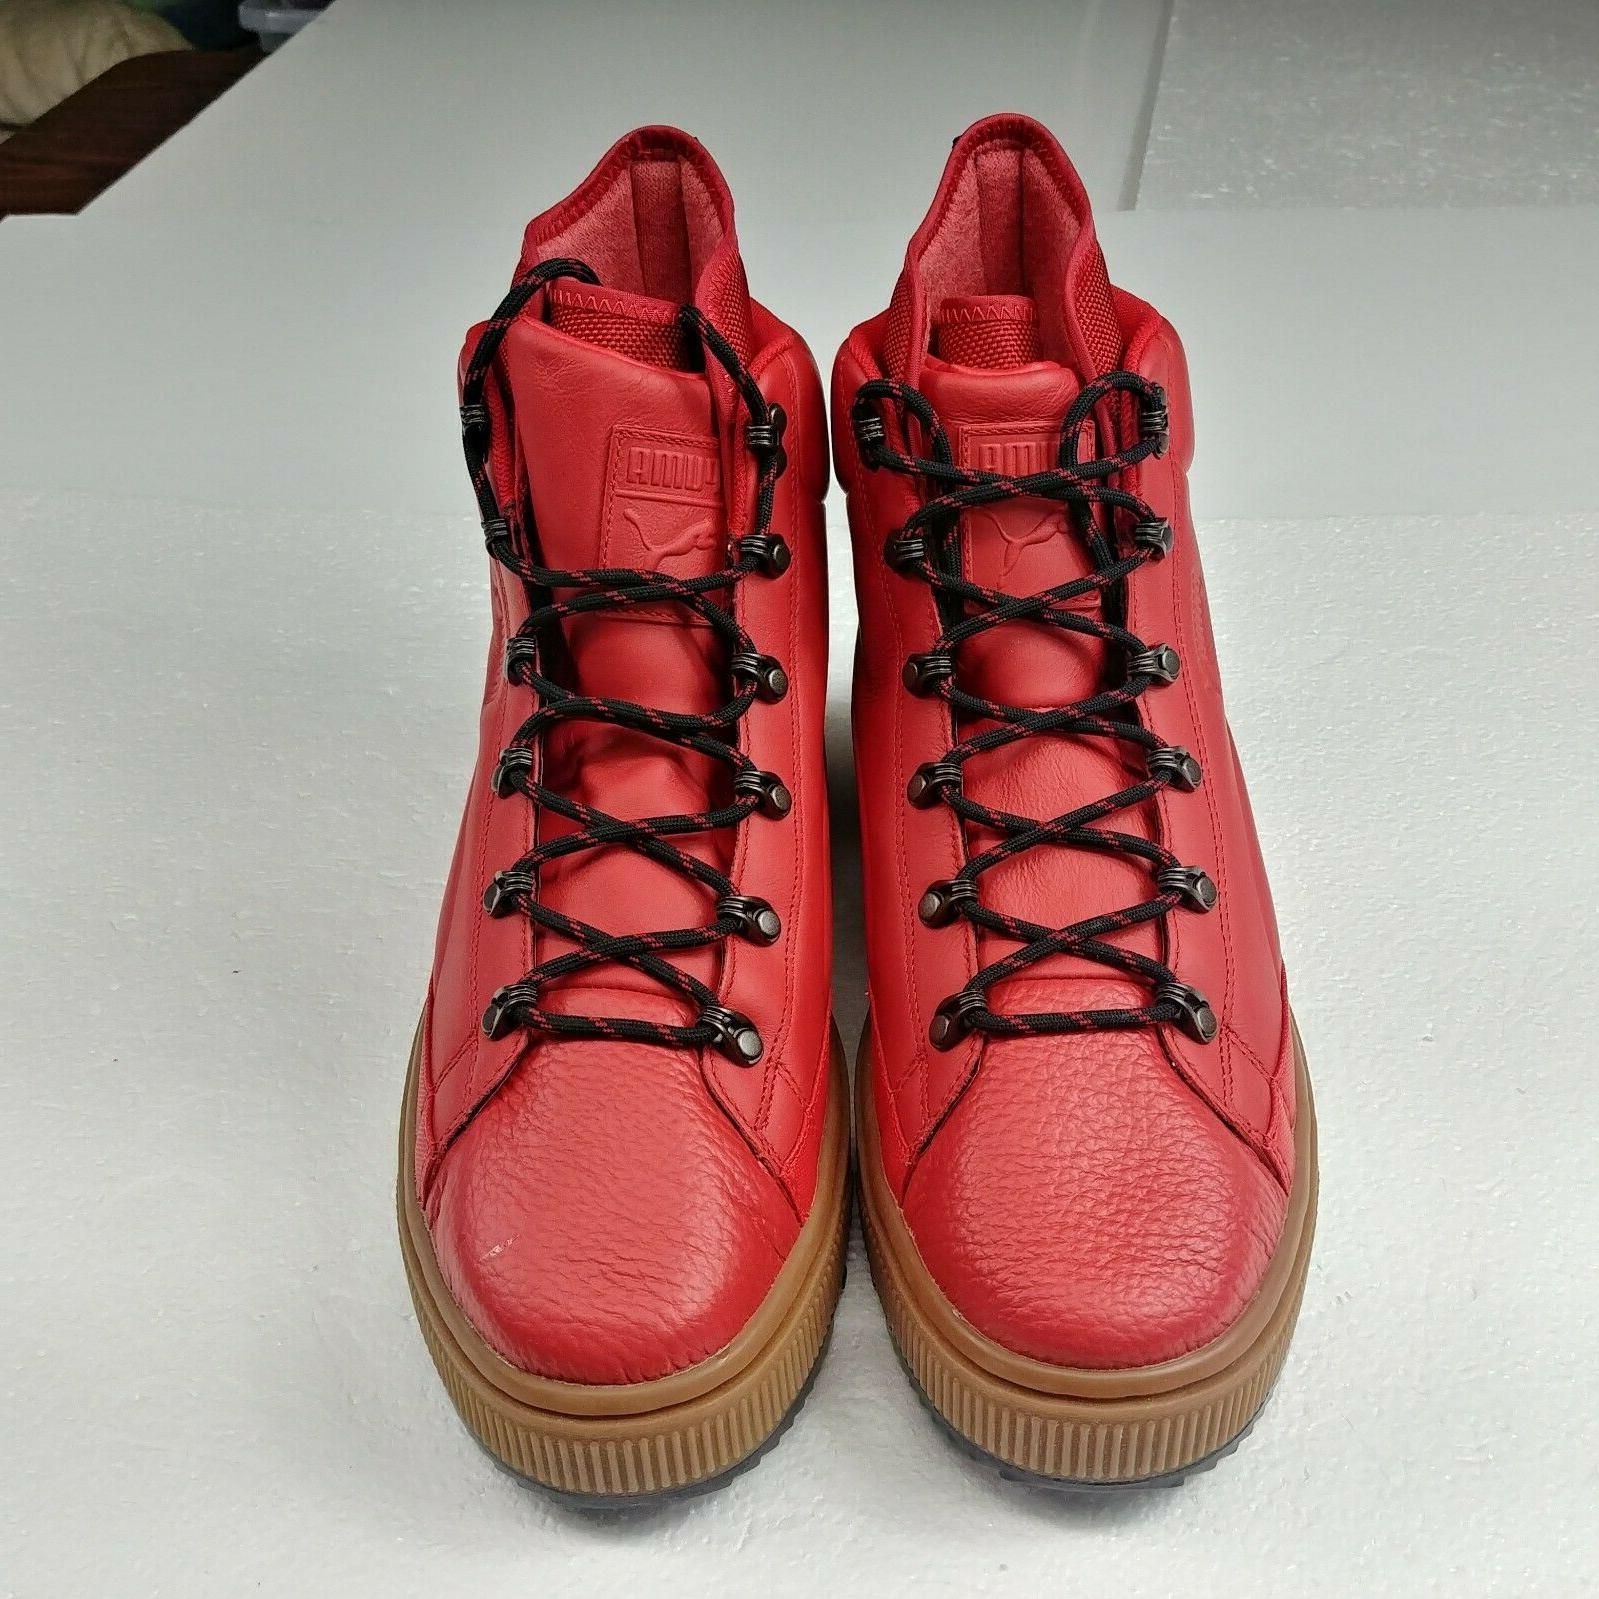 Puma The Ren Waterproof Boots Barbados Cherry Red